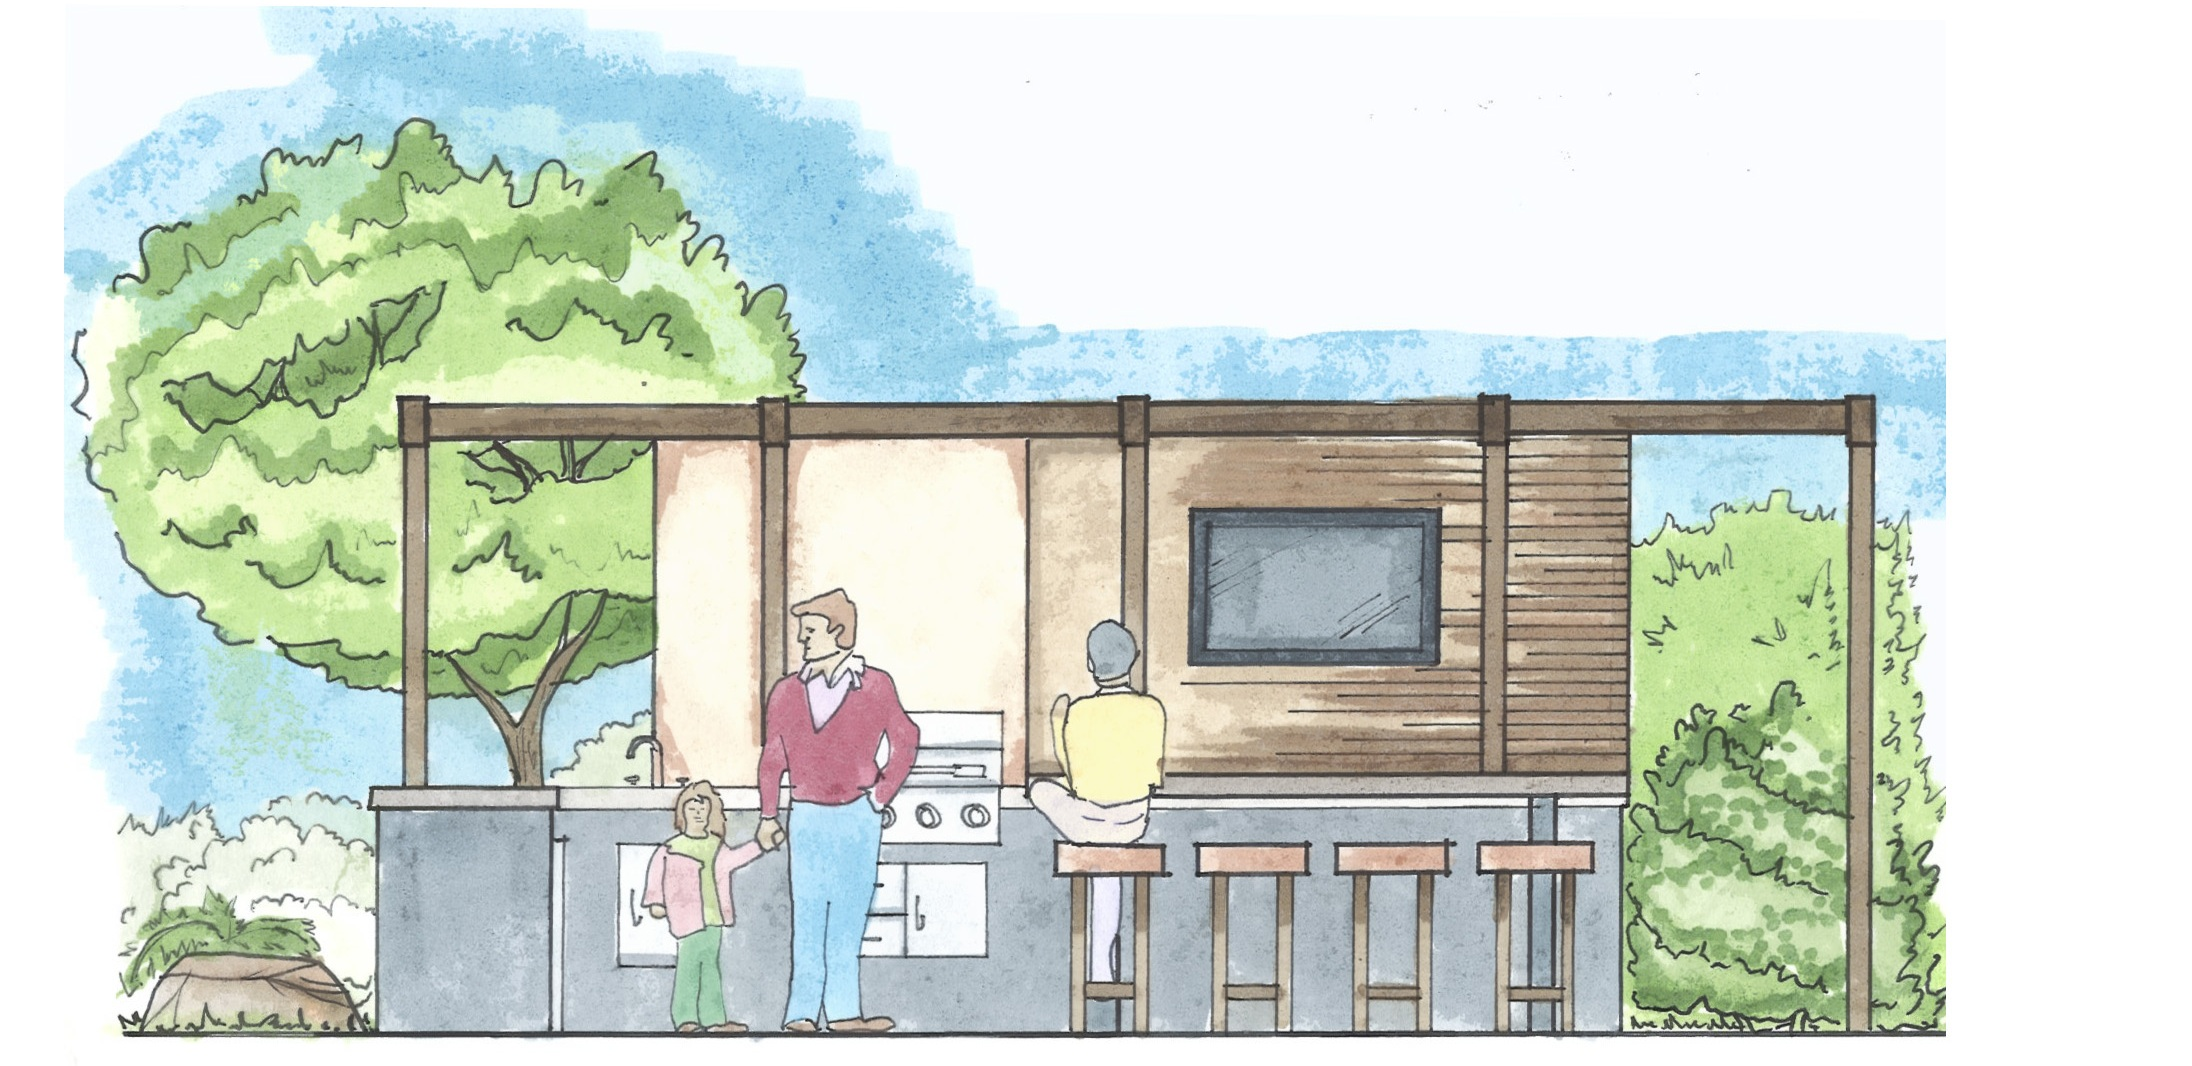 Another new project in Carlsbad, California proposes an alfresco entertainment area that will draw the crowd out towards the rear of the yard.